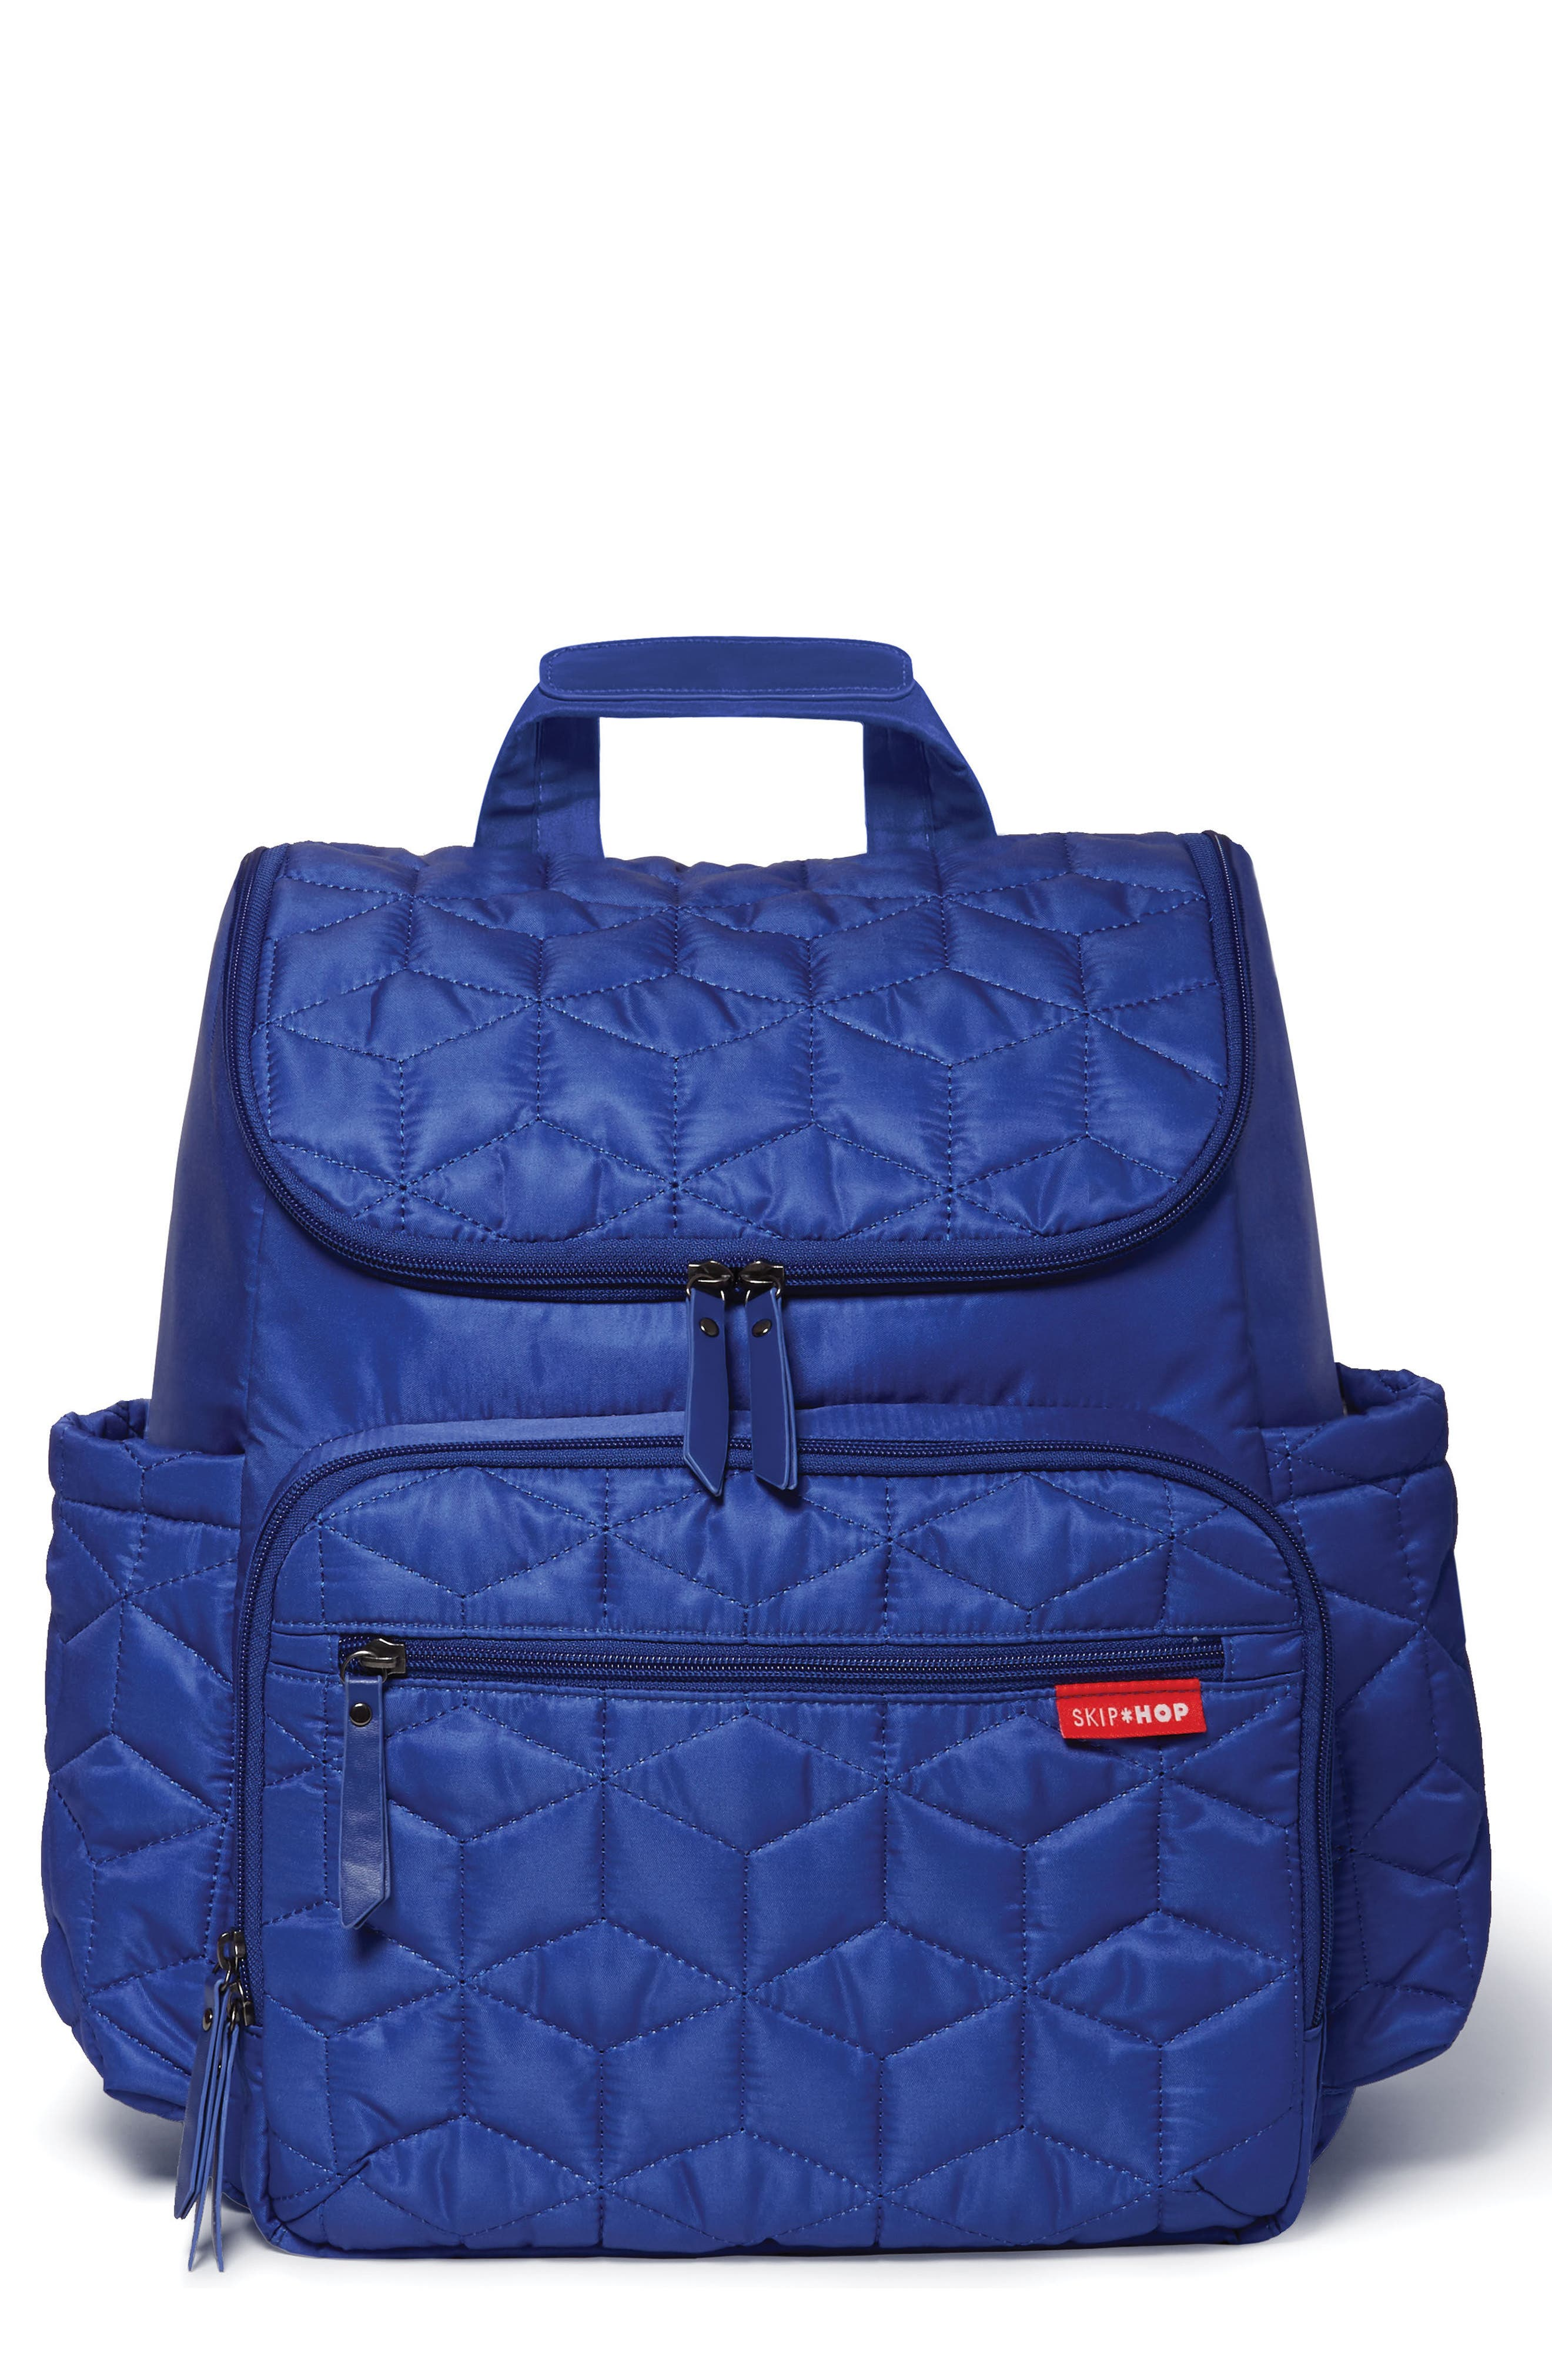 Skip Hop 'Forma' Diaper Backpack